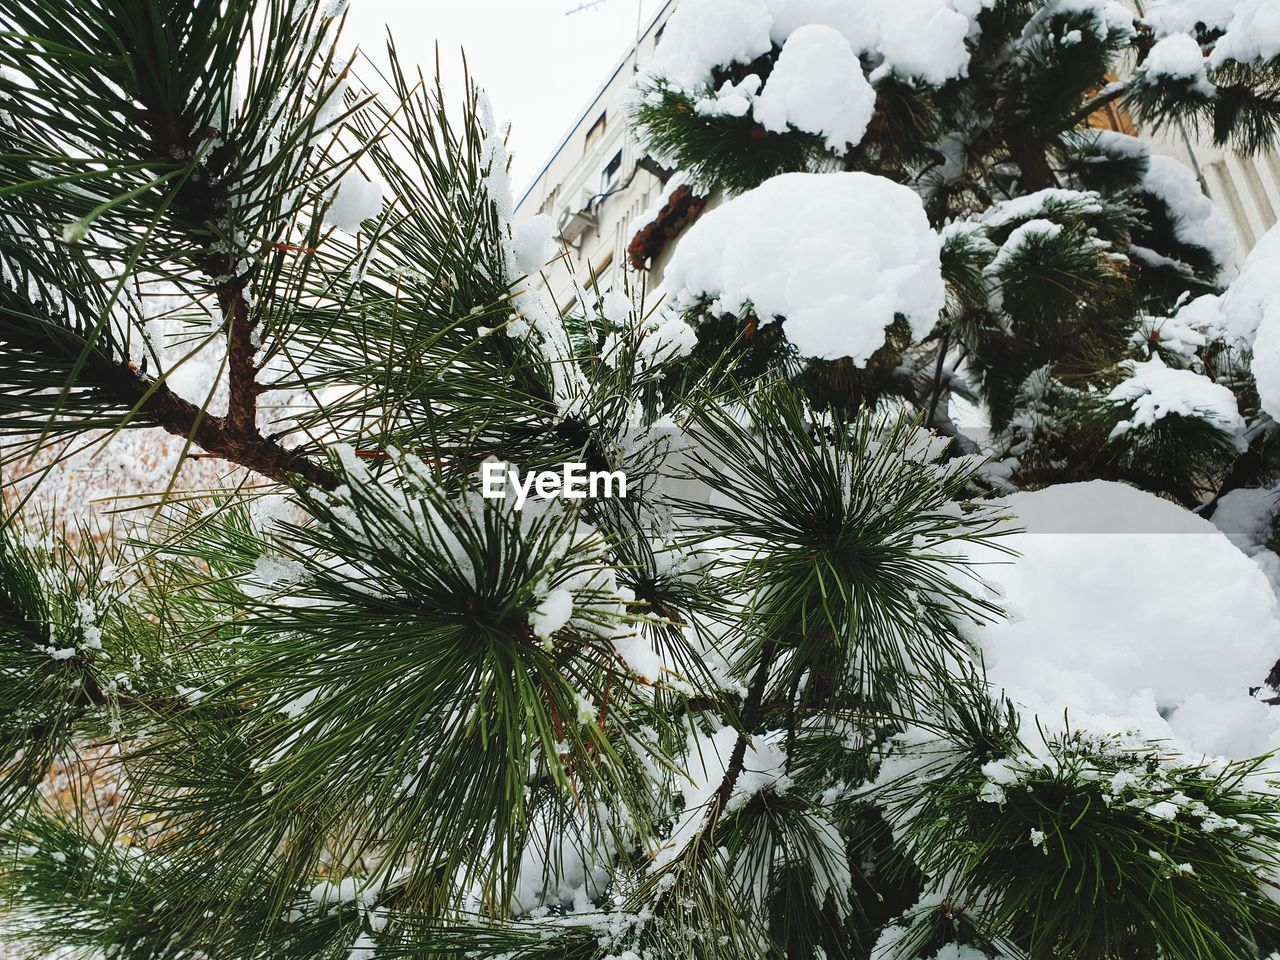 tree, plant, cold temperature, winter, growth, snow, nature, sky, day, no people, beauty in nature, low angle view, tranquility, branch, green color, outdoors, frozen, pine tree, close-up, coniferous tree, fir tree